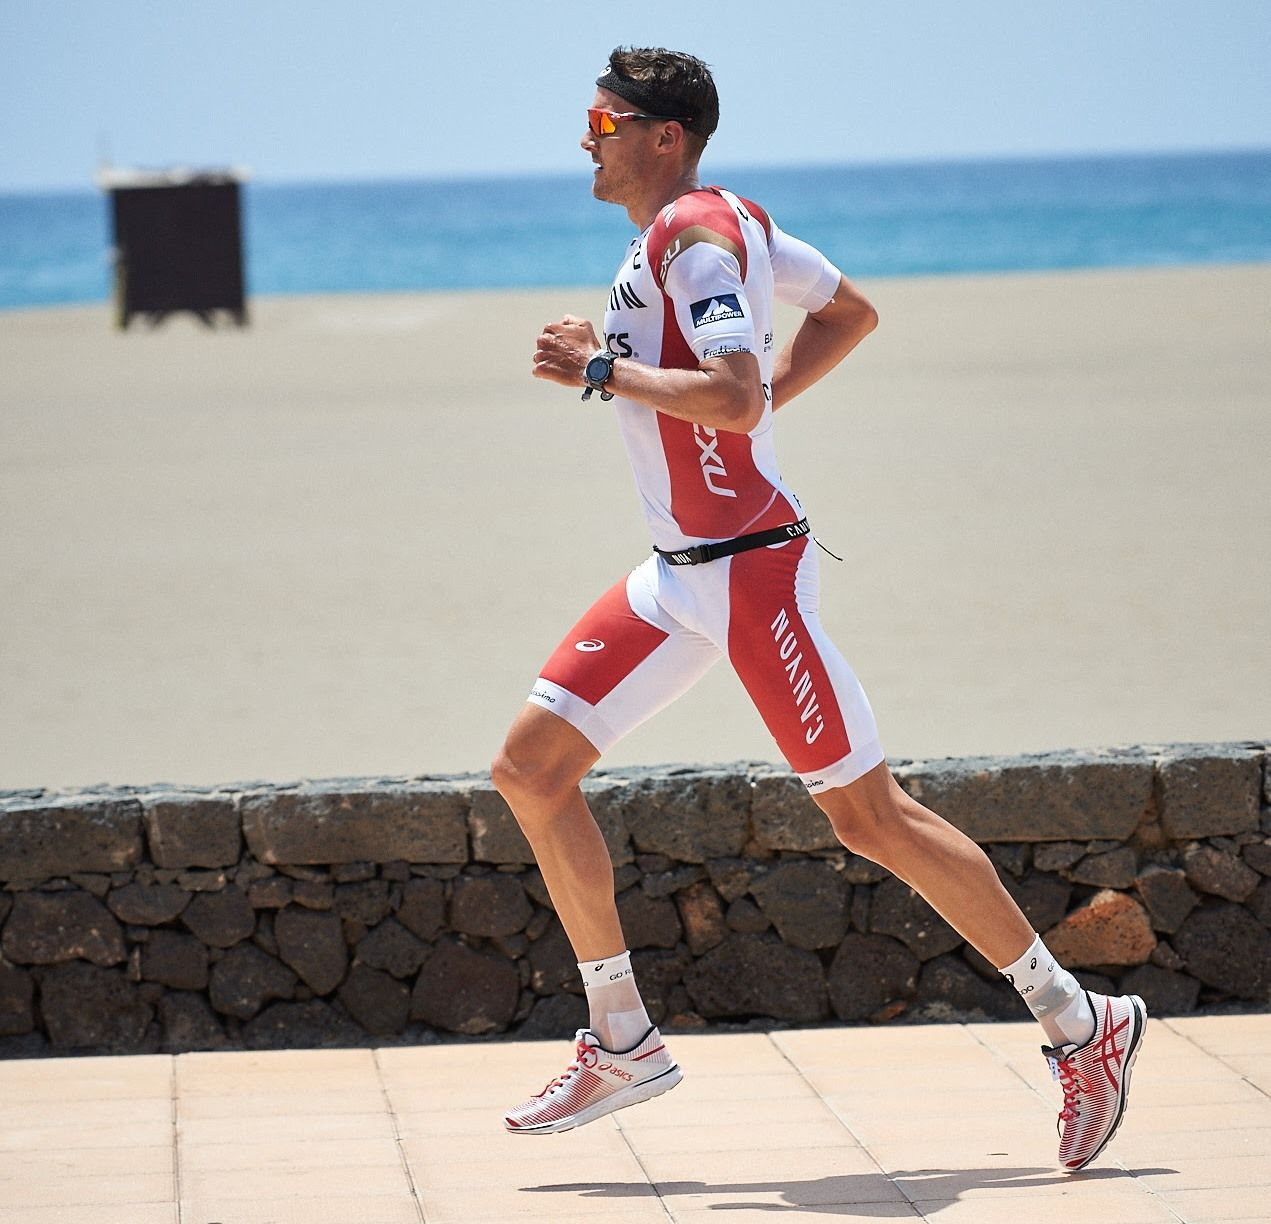 955bcaf3a10 Jan Frodeno stamped his ticket to Kona with a second place finish at  Ironman Lanzarote on Sunday. The current Ironman World Champion led out of  the swim